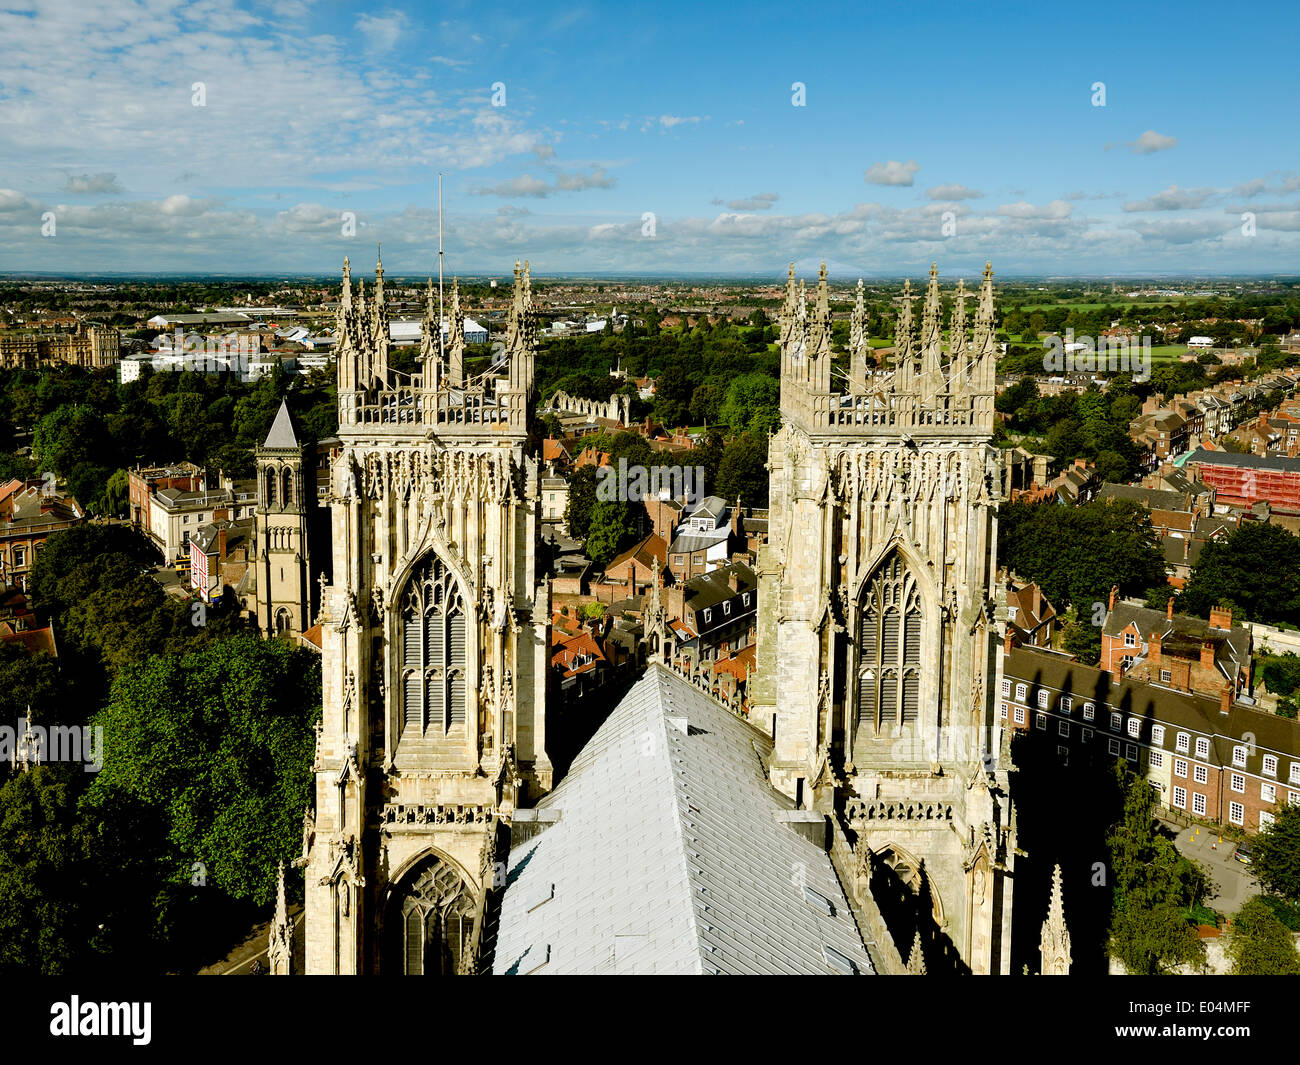 YORK MINSTER , VIEW FROM THE ROOF OF YORK MINSTER YORKSHIRE ENGLAND UK - Stock Image